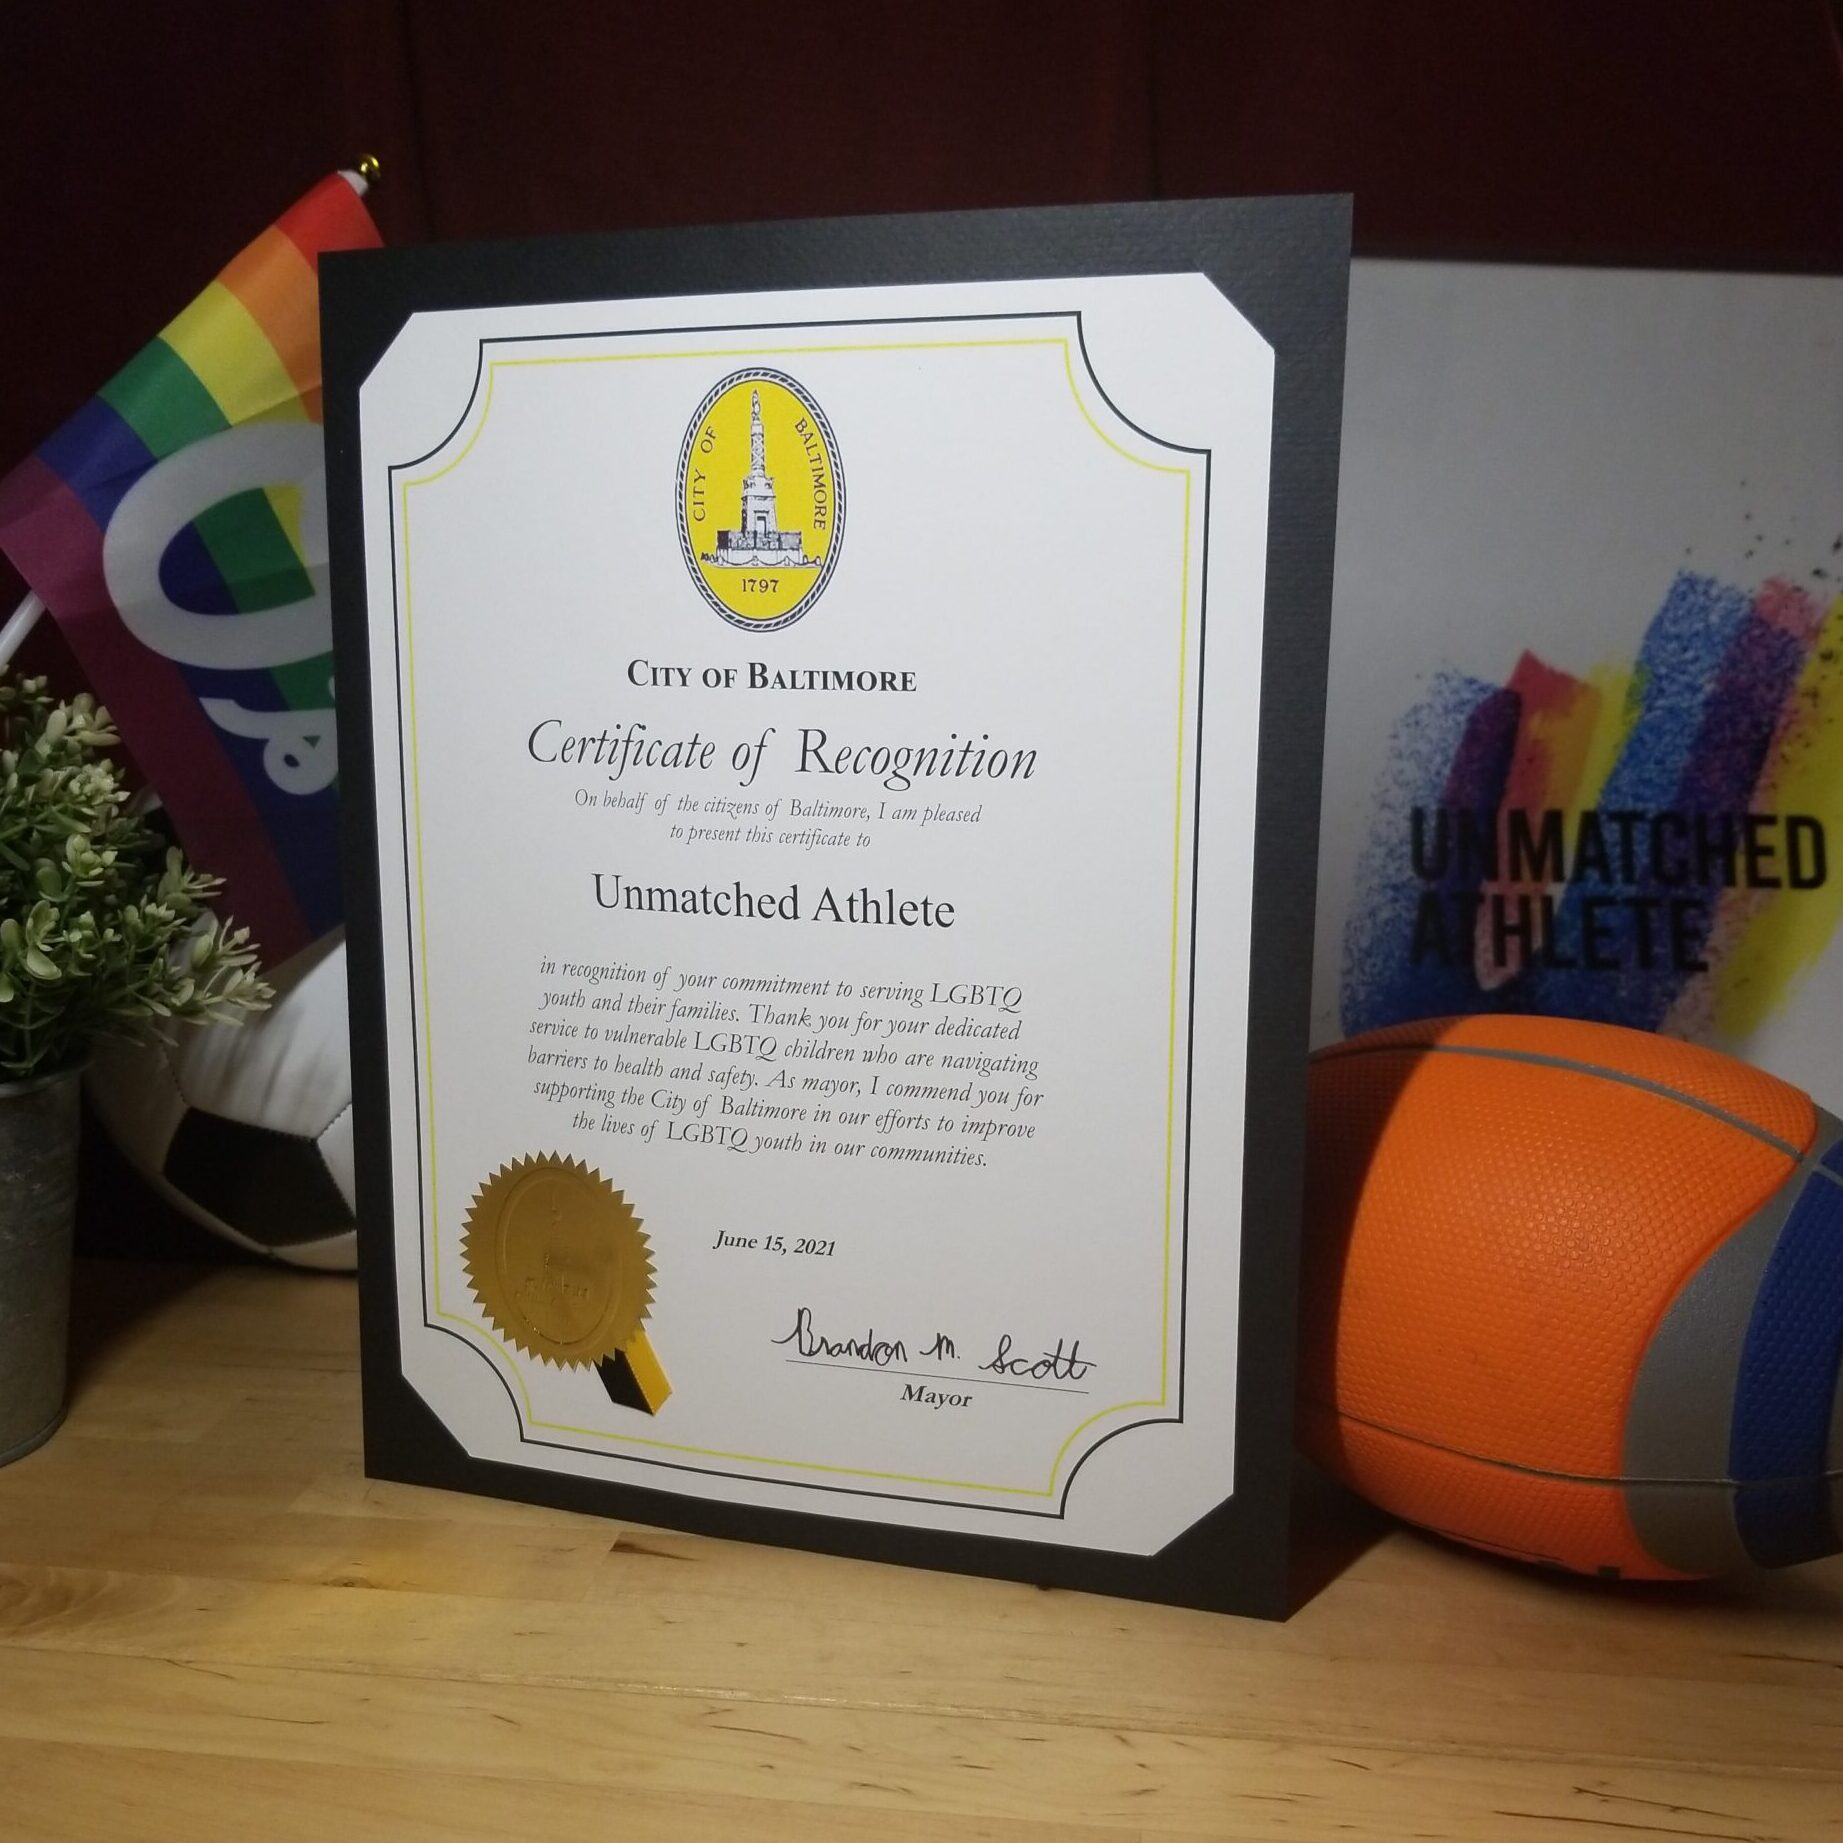 Recognition by the City of Baltimore